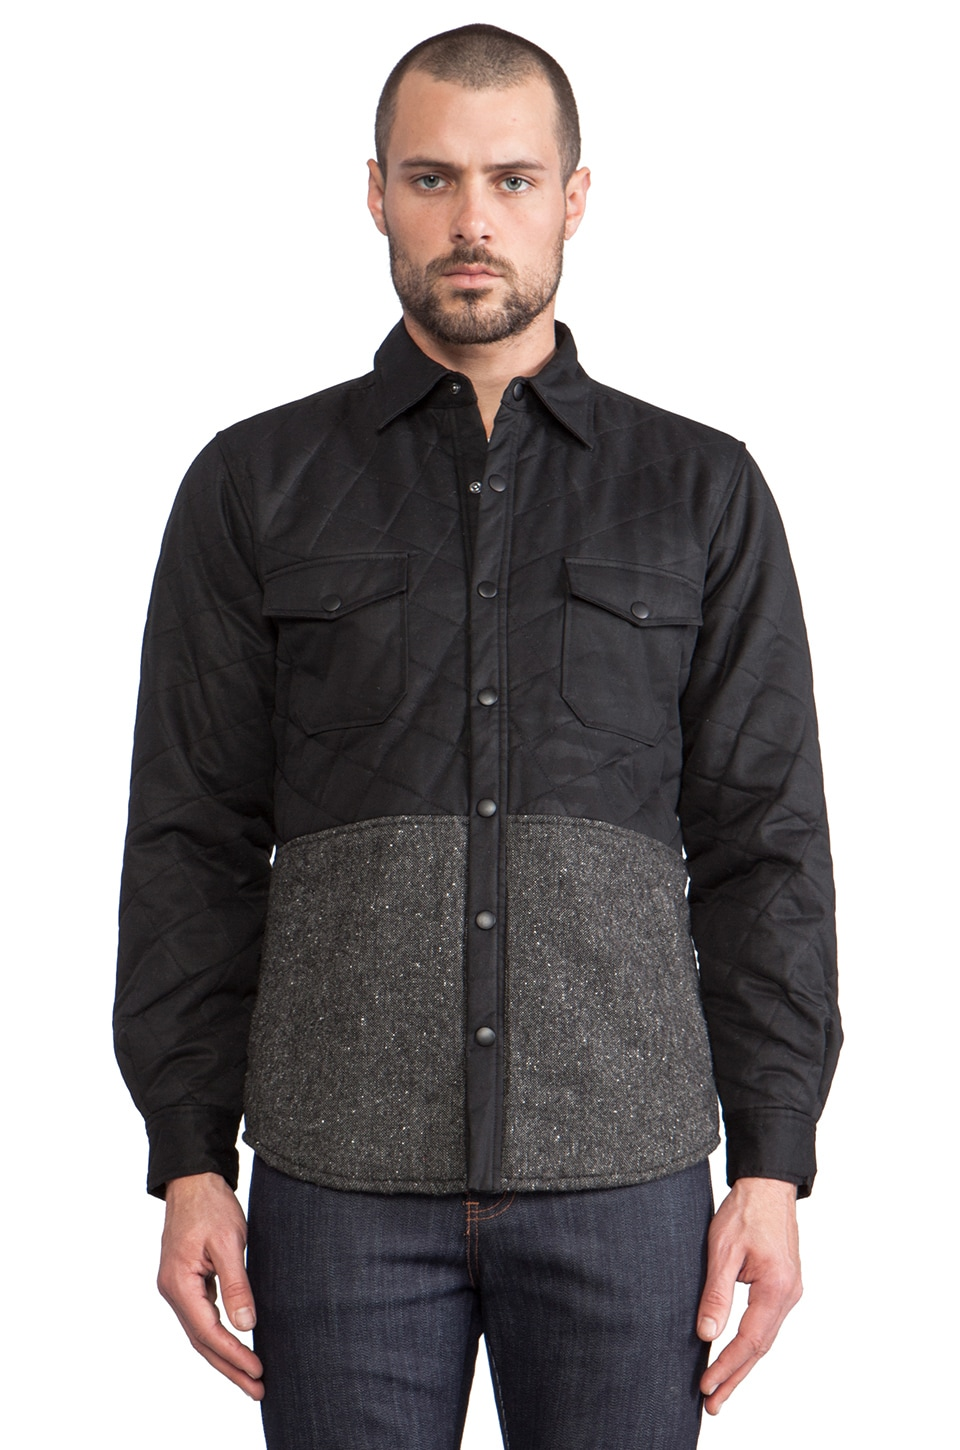 Shades of Grey by Micah Cohen Quilted Shirt Jacket in Black/Dark Grey Tweed